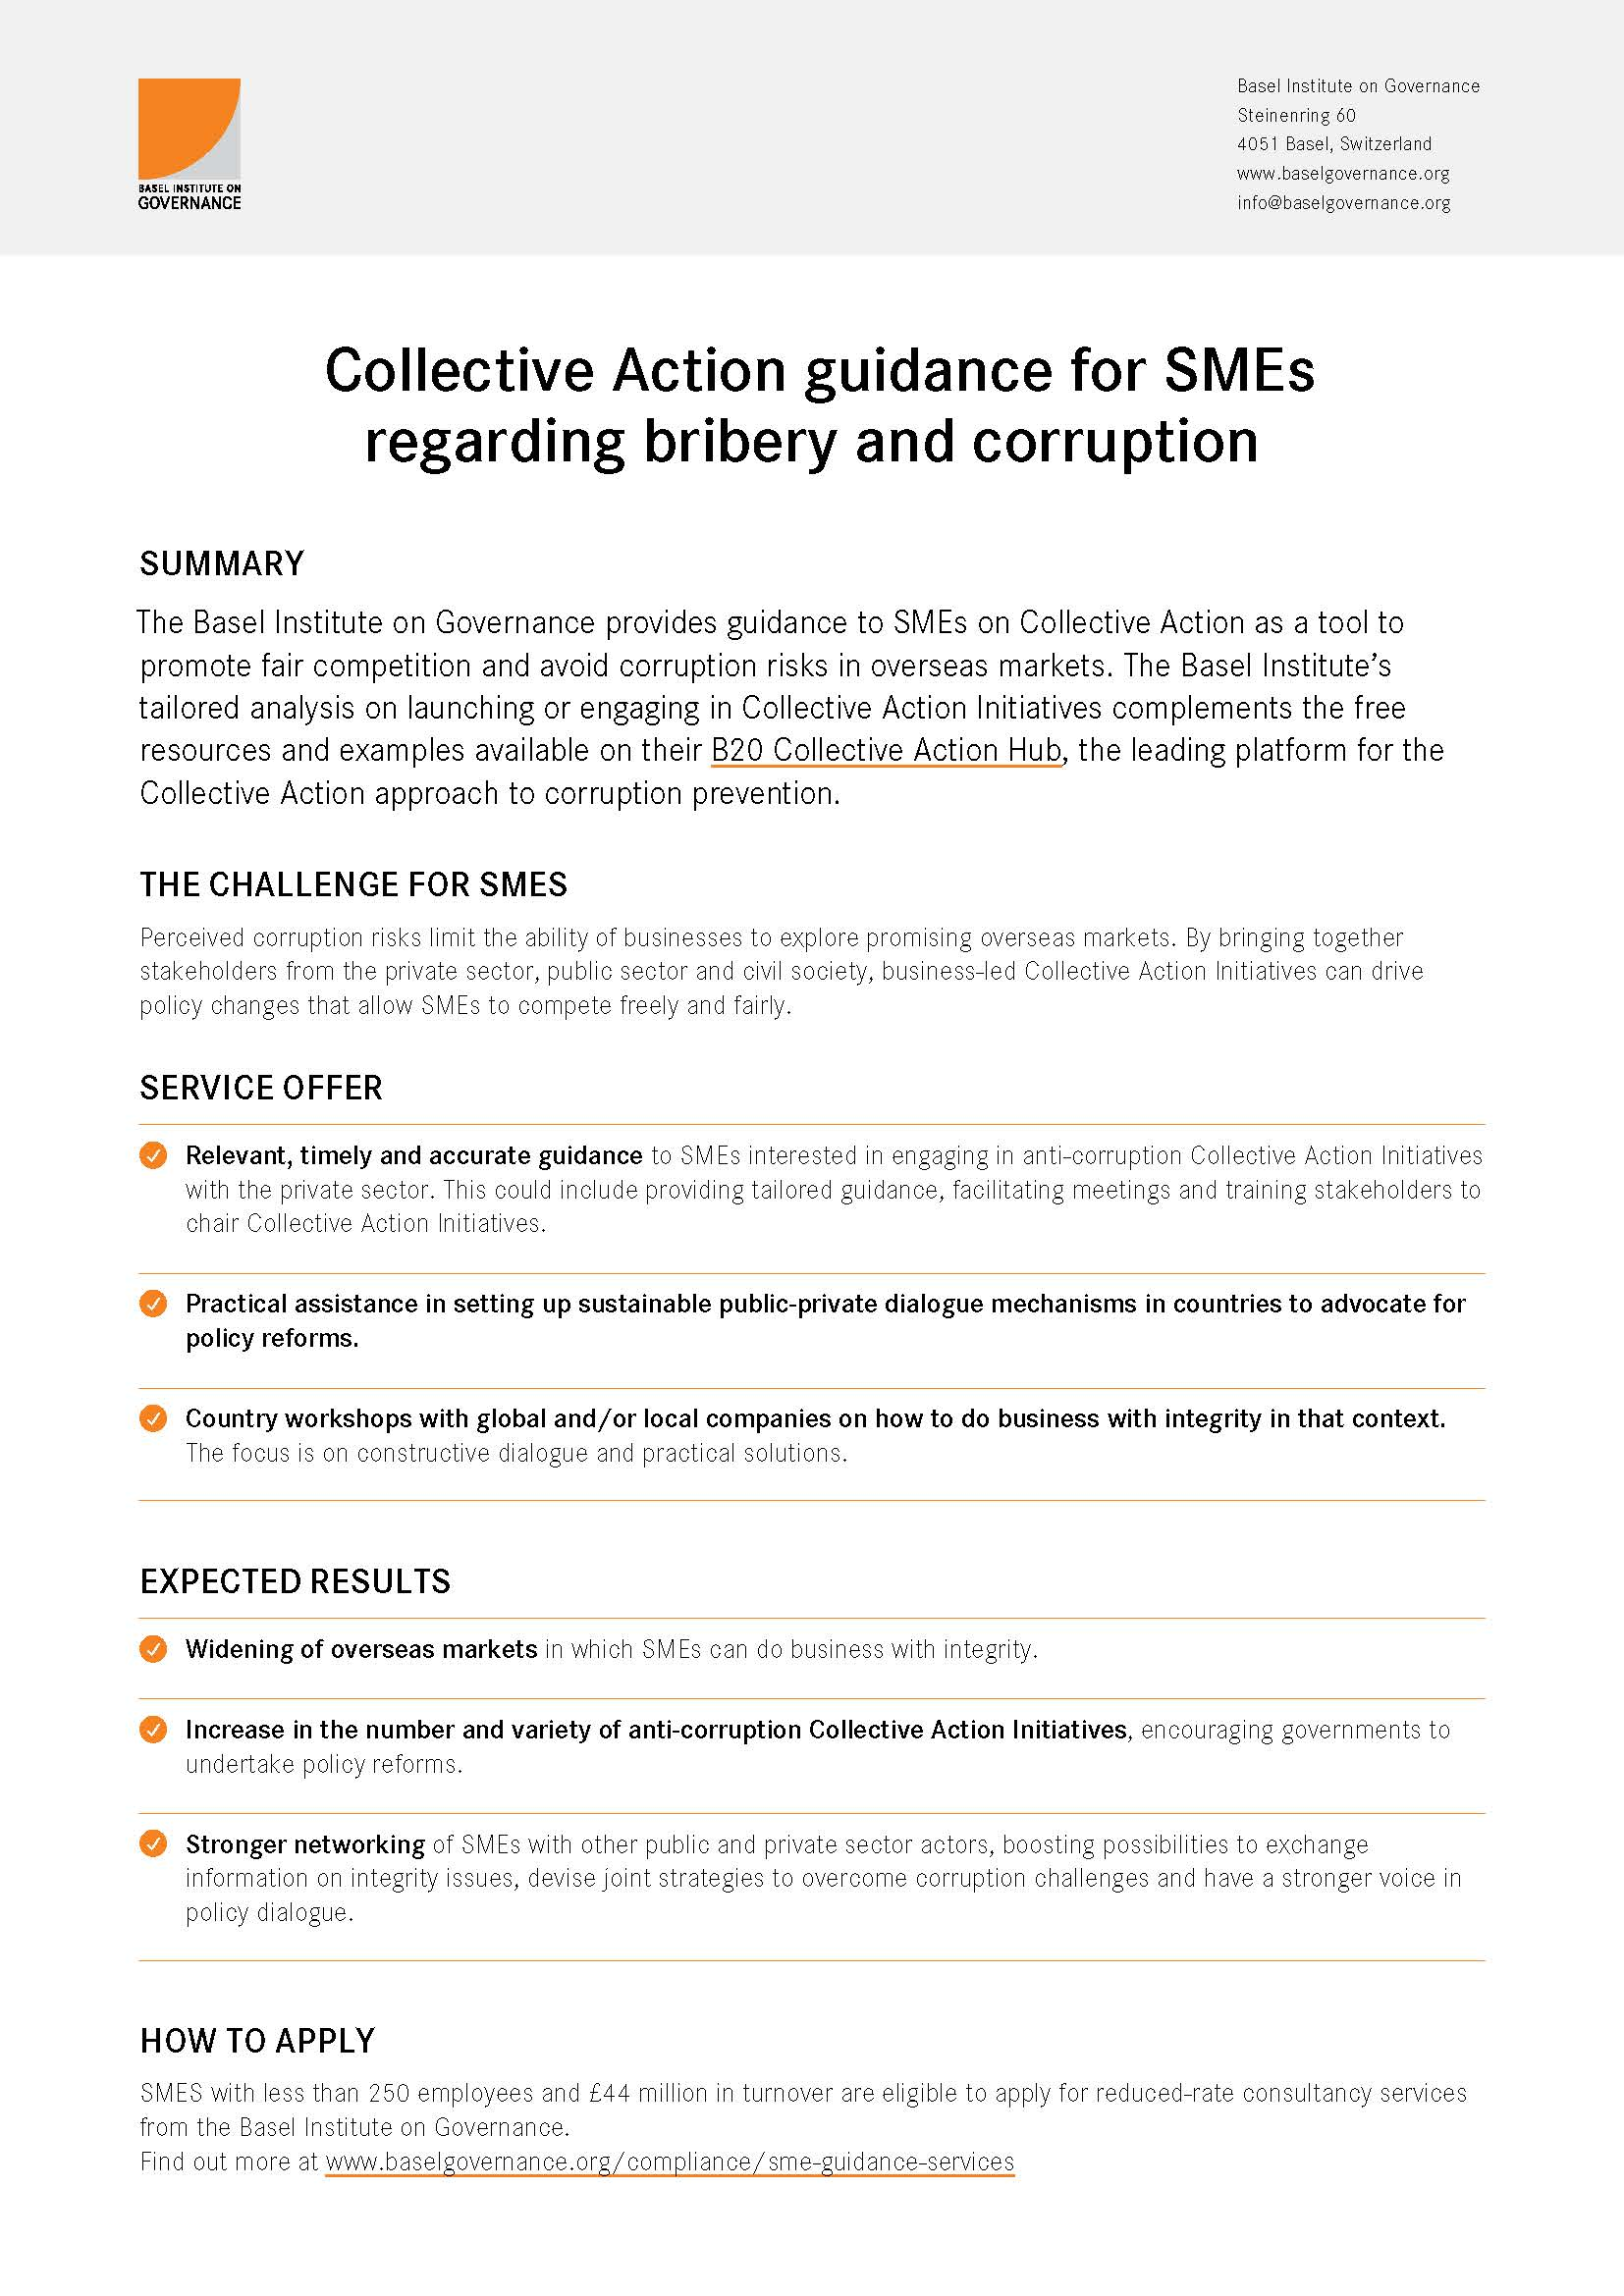 Collective Action guidance for SMEs flyer